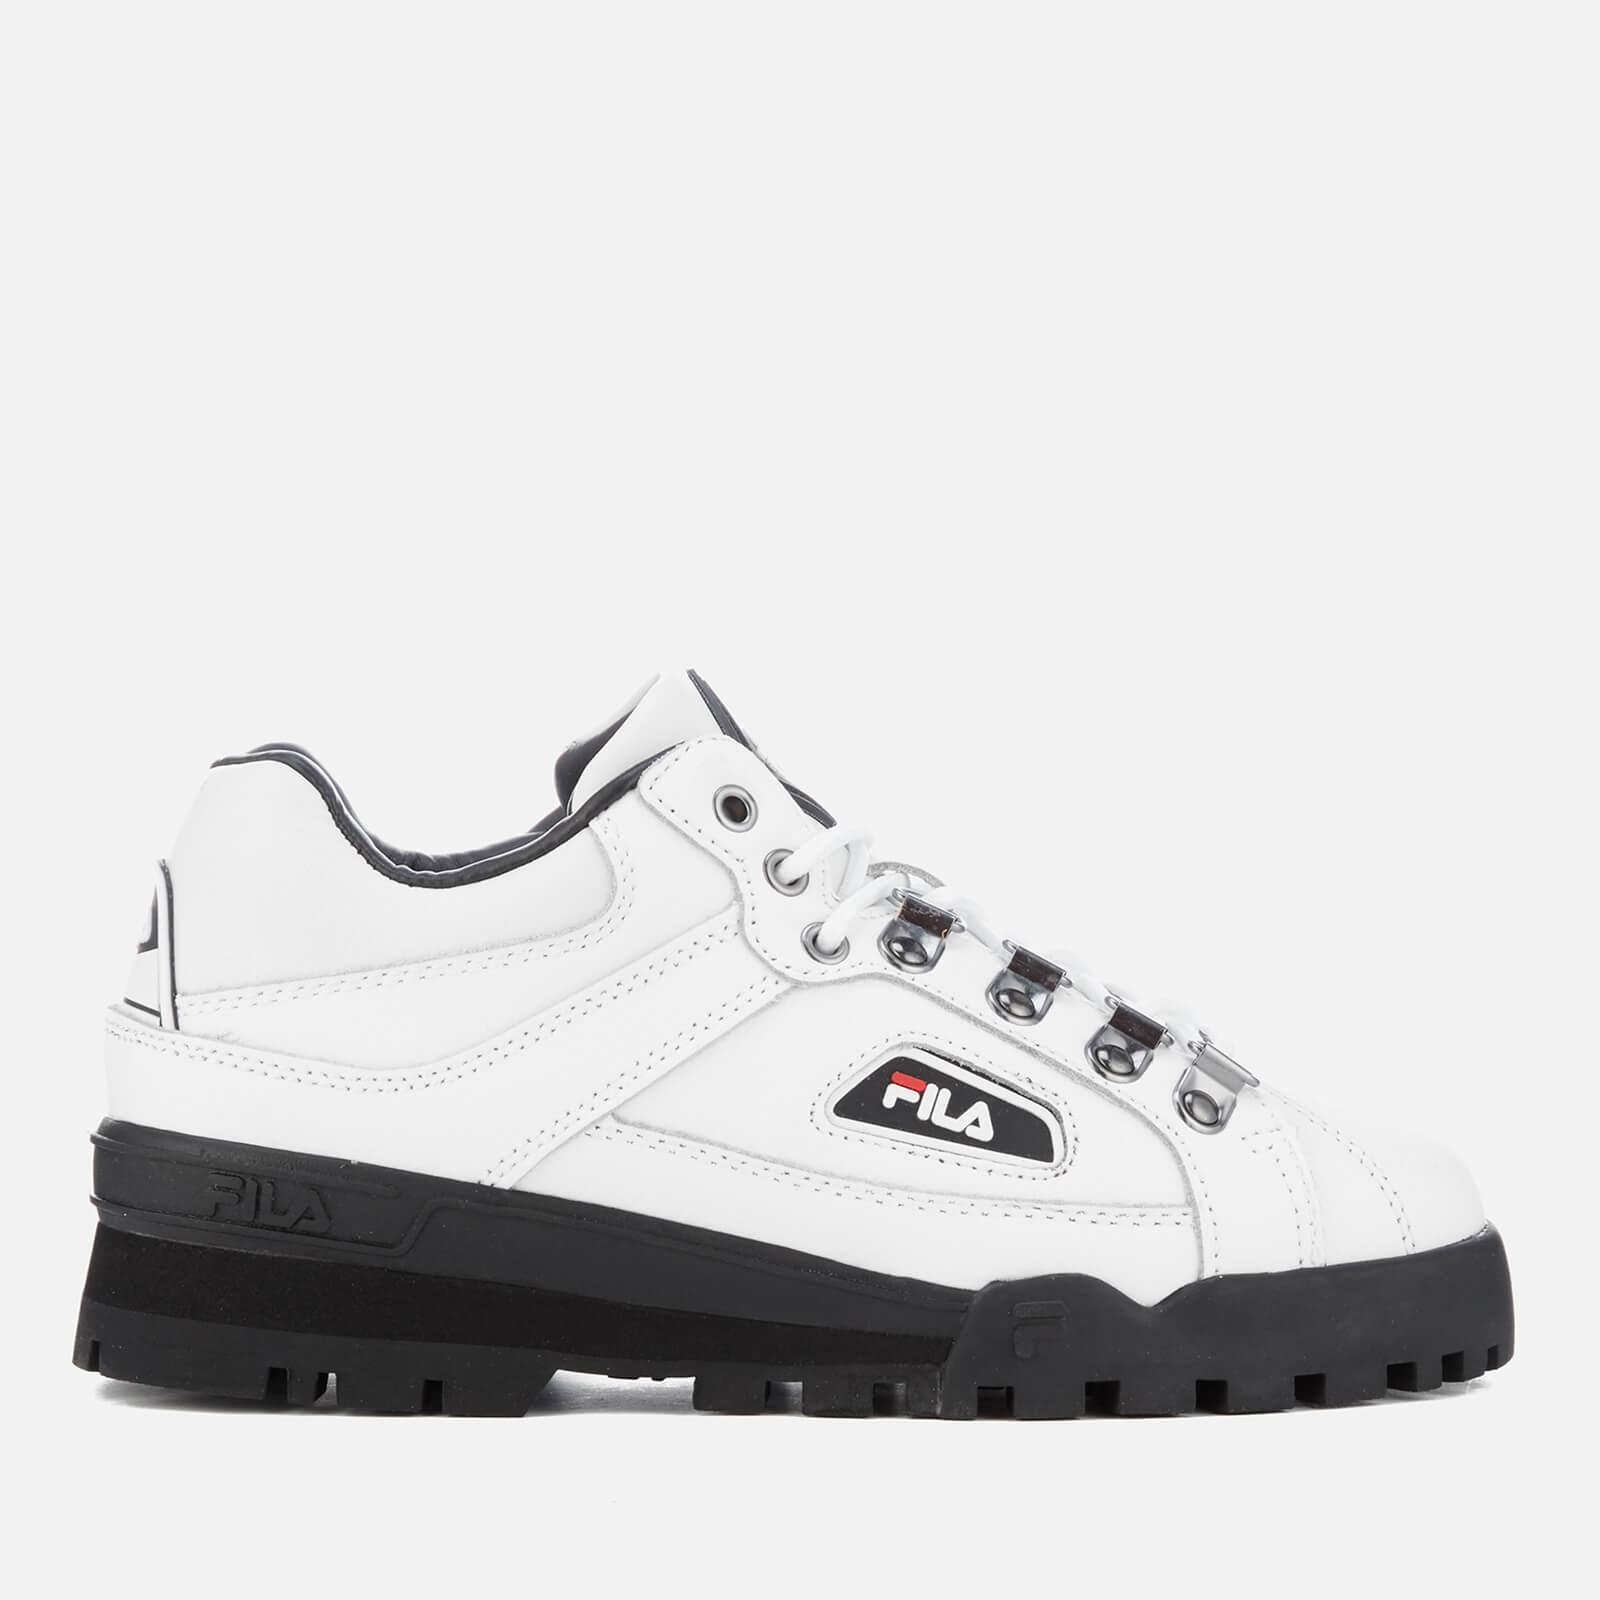 clearance best sale footaction for sale Fila Trail Blazer Boots In White for nice footlocker pictures yEIxw6s